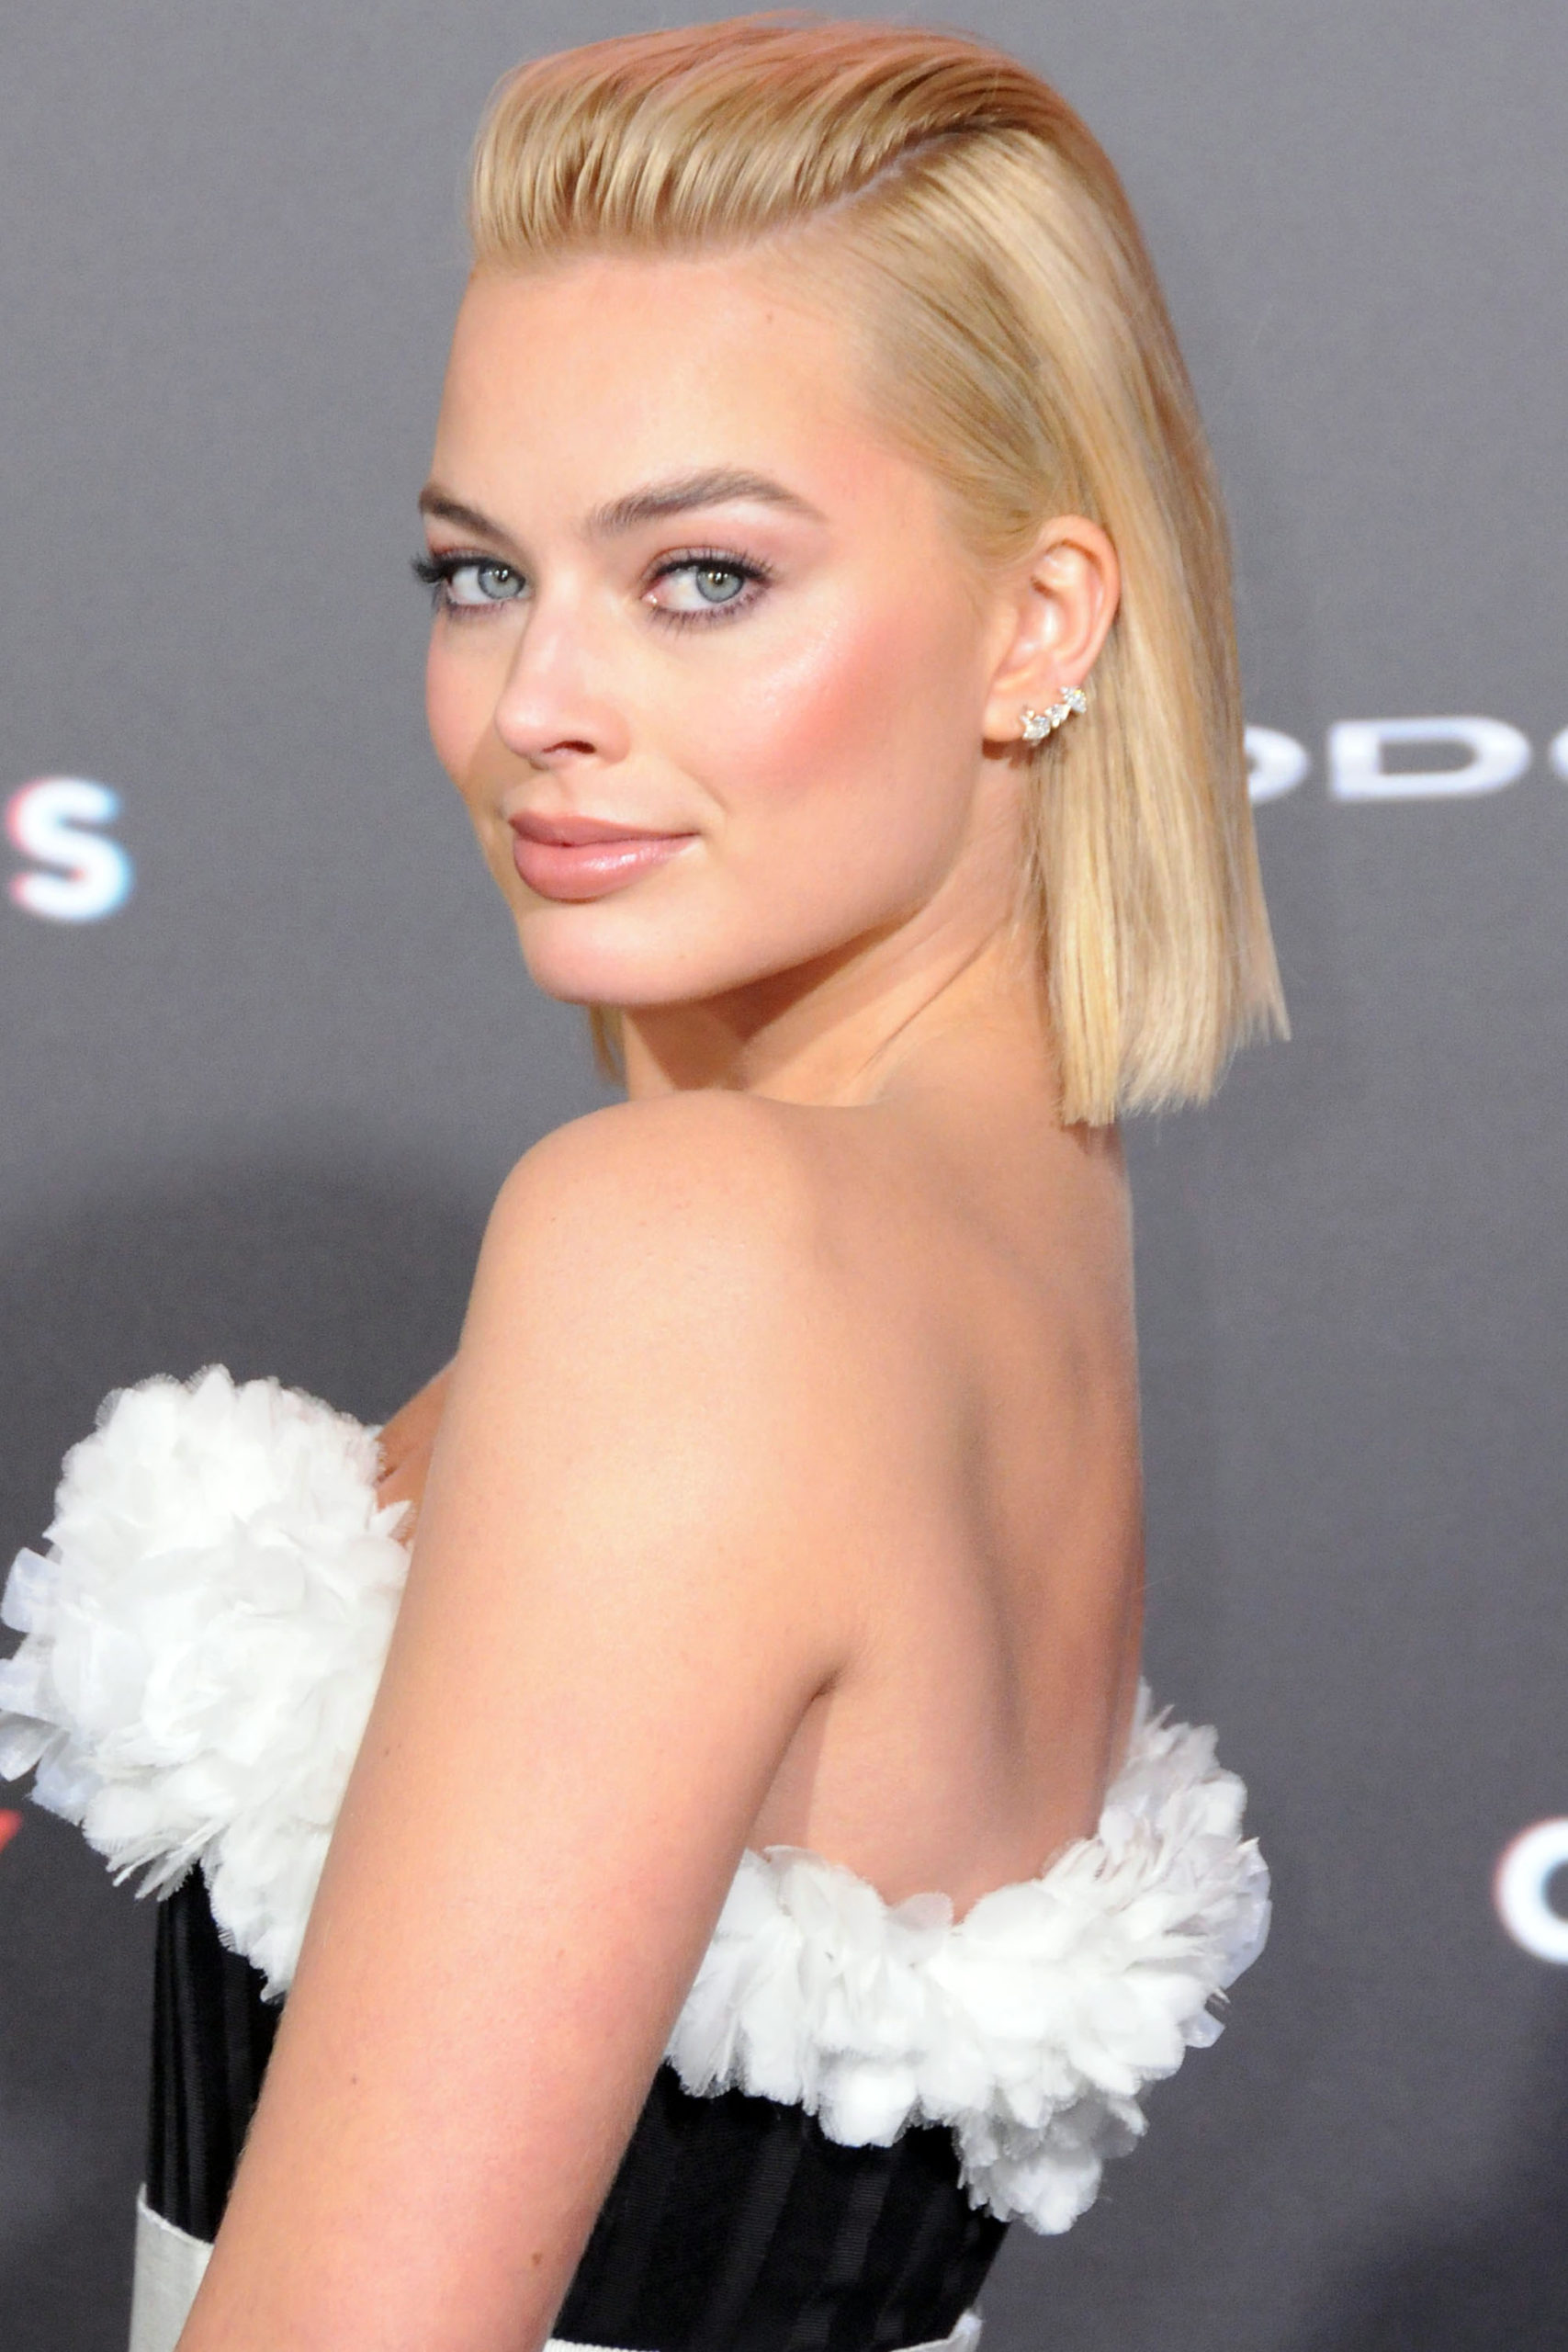 Margot Robbie Hairstyle scaled - Margot Robbie Net Worth, Pics, Wallpapers, Career and Biography